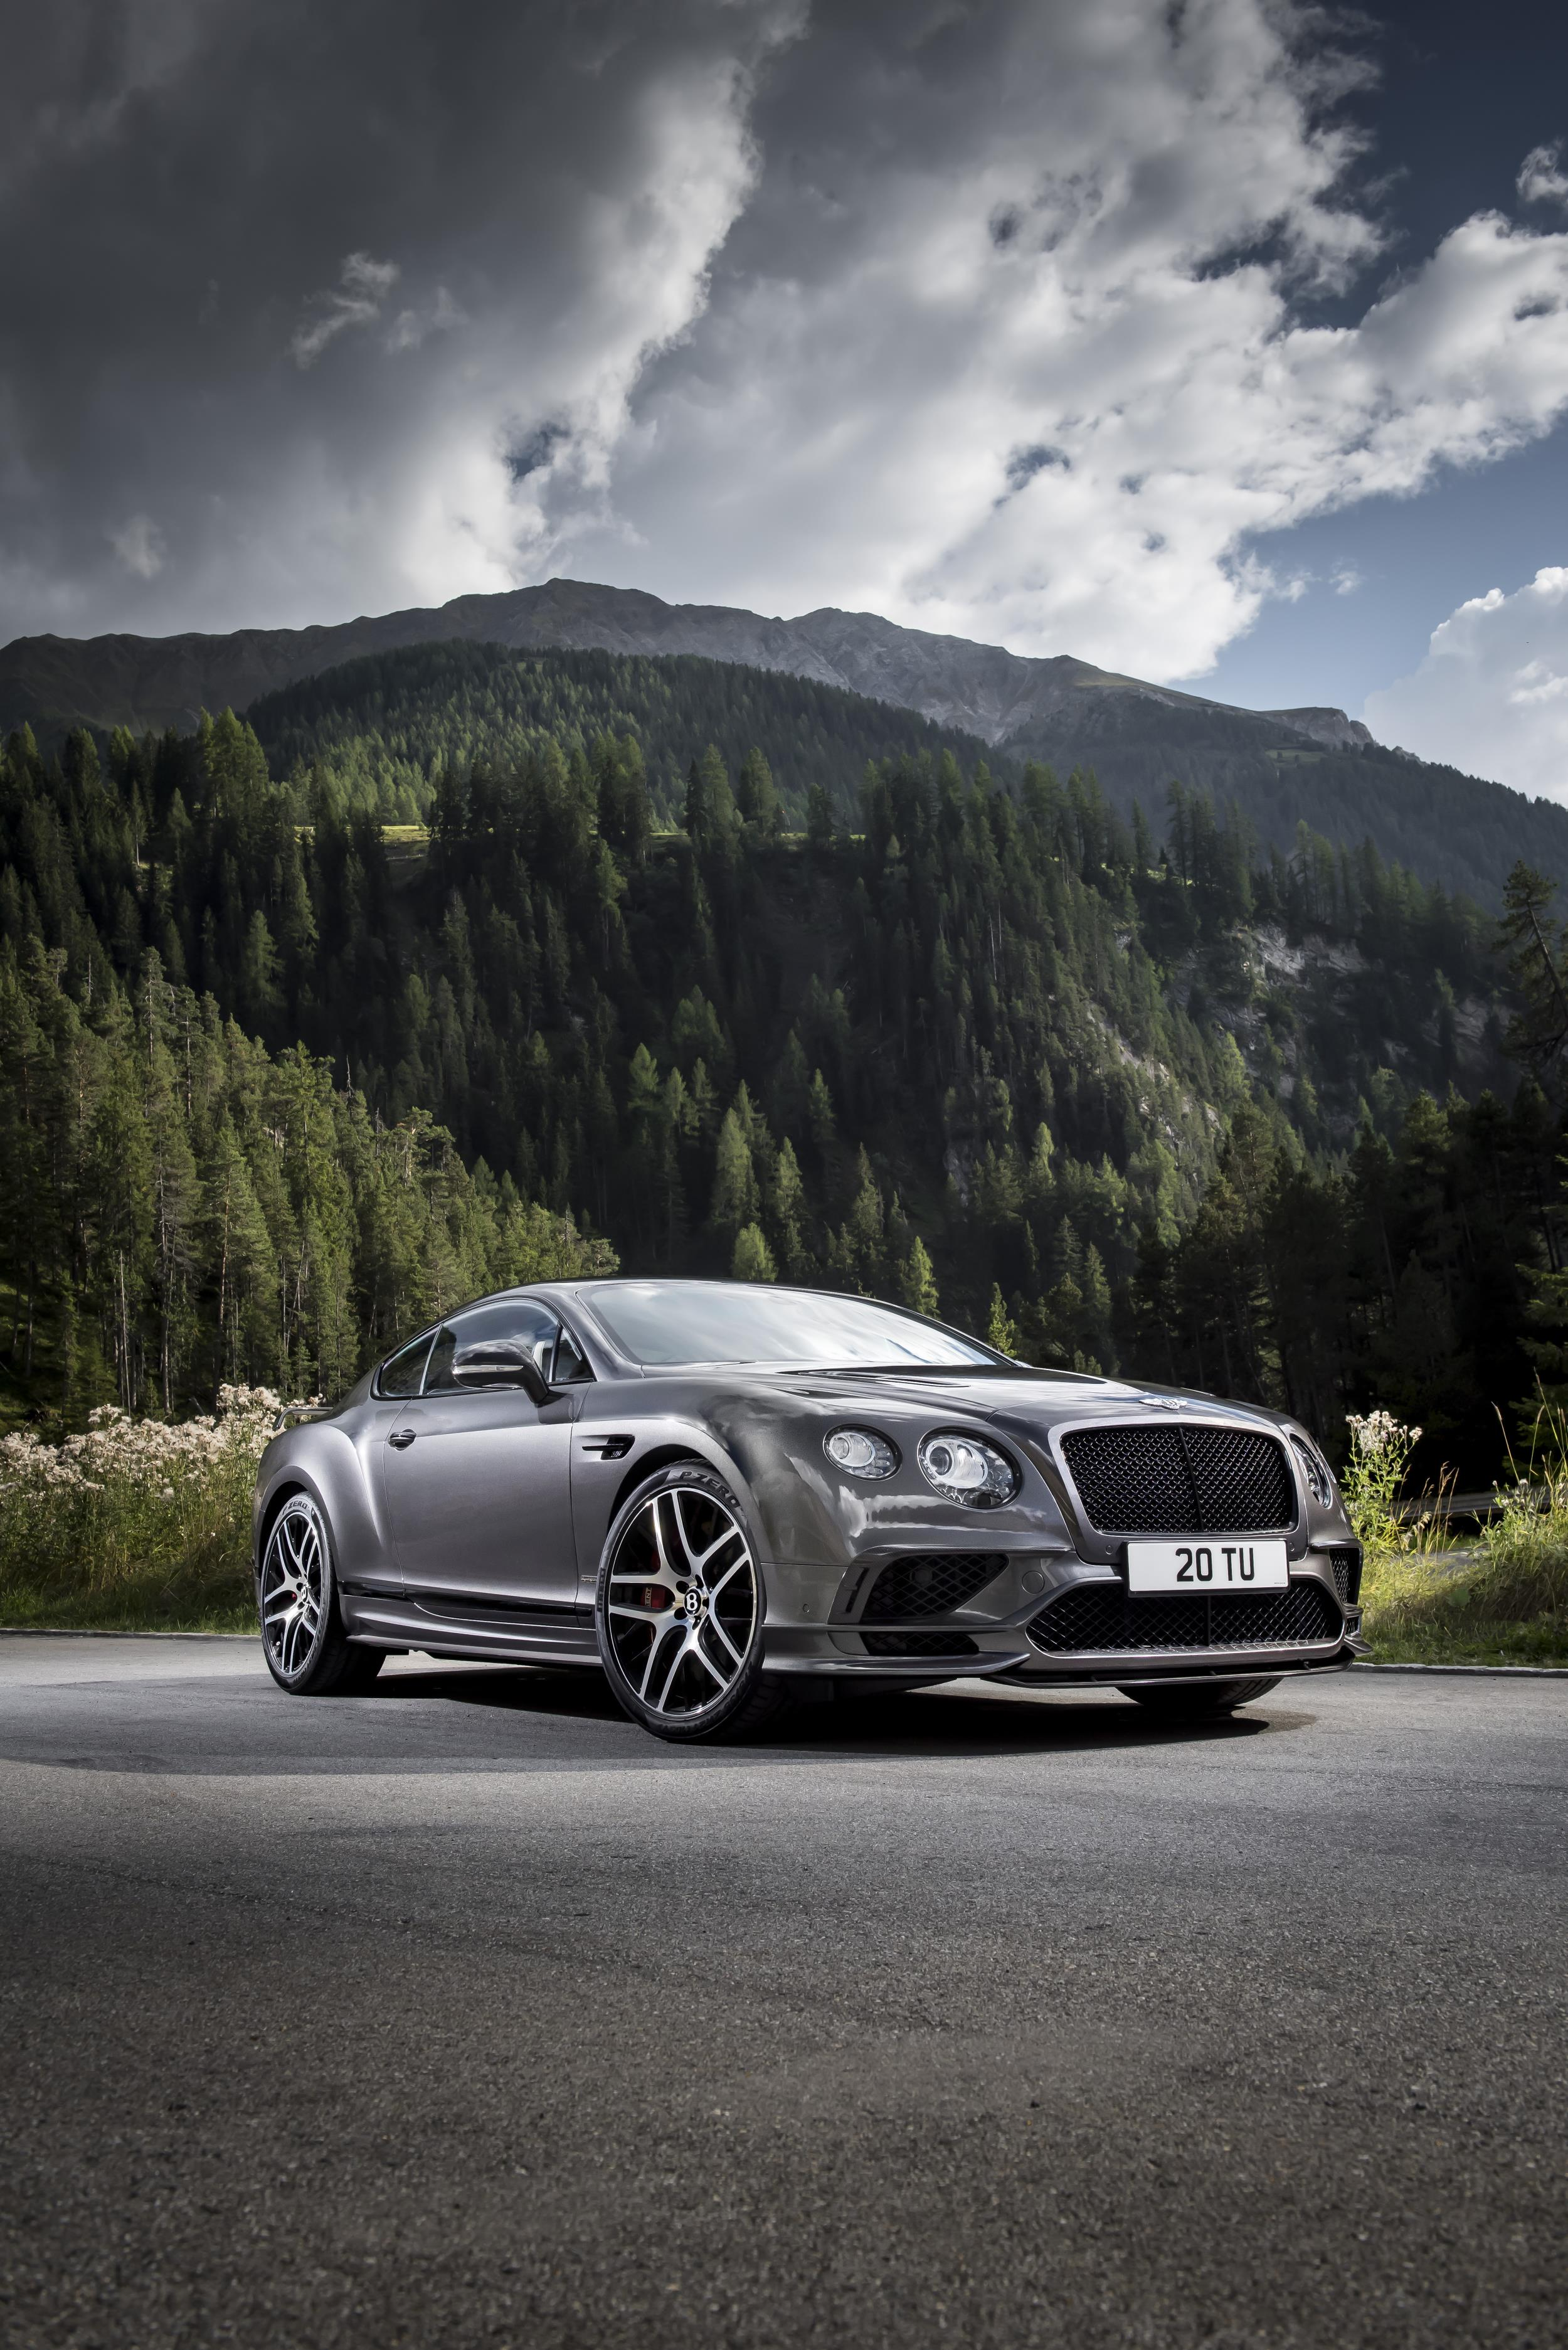 Bentley Continental GT mod specifications